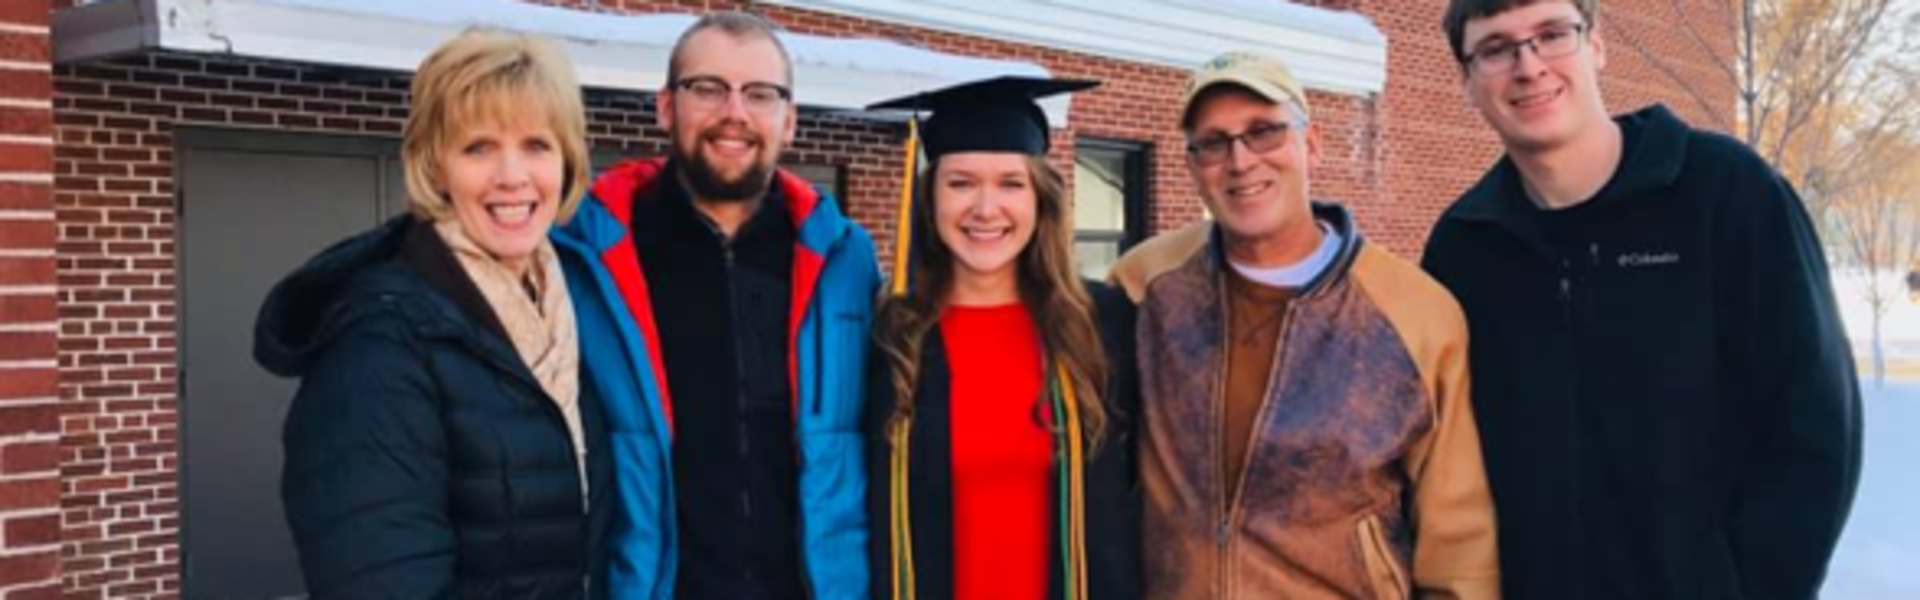 Graduate, Liz Sproul Wearing her Excellence in Sustainability Honors cord with her family